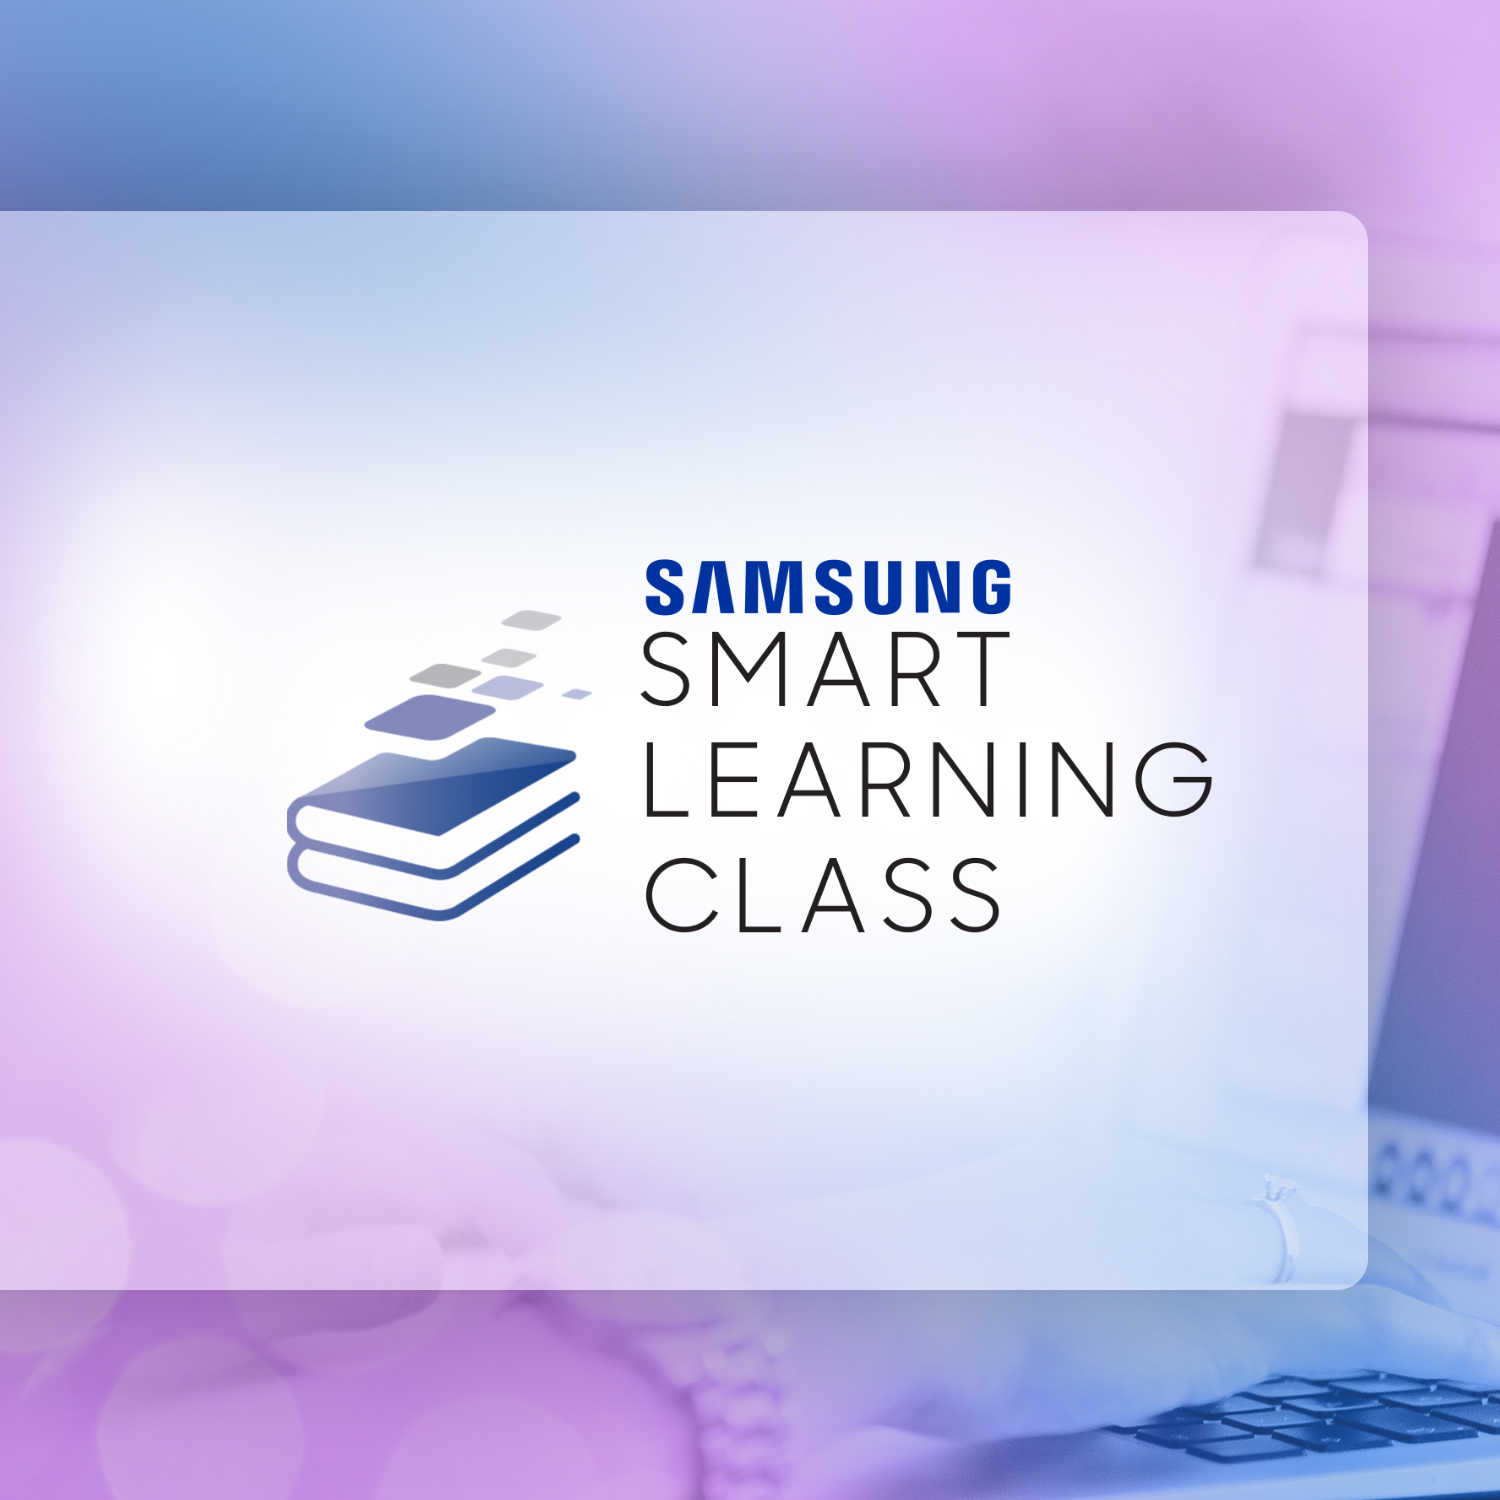 Samsung Smart Learning Class - Games Construct Challenge